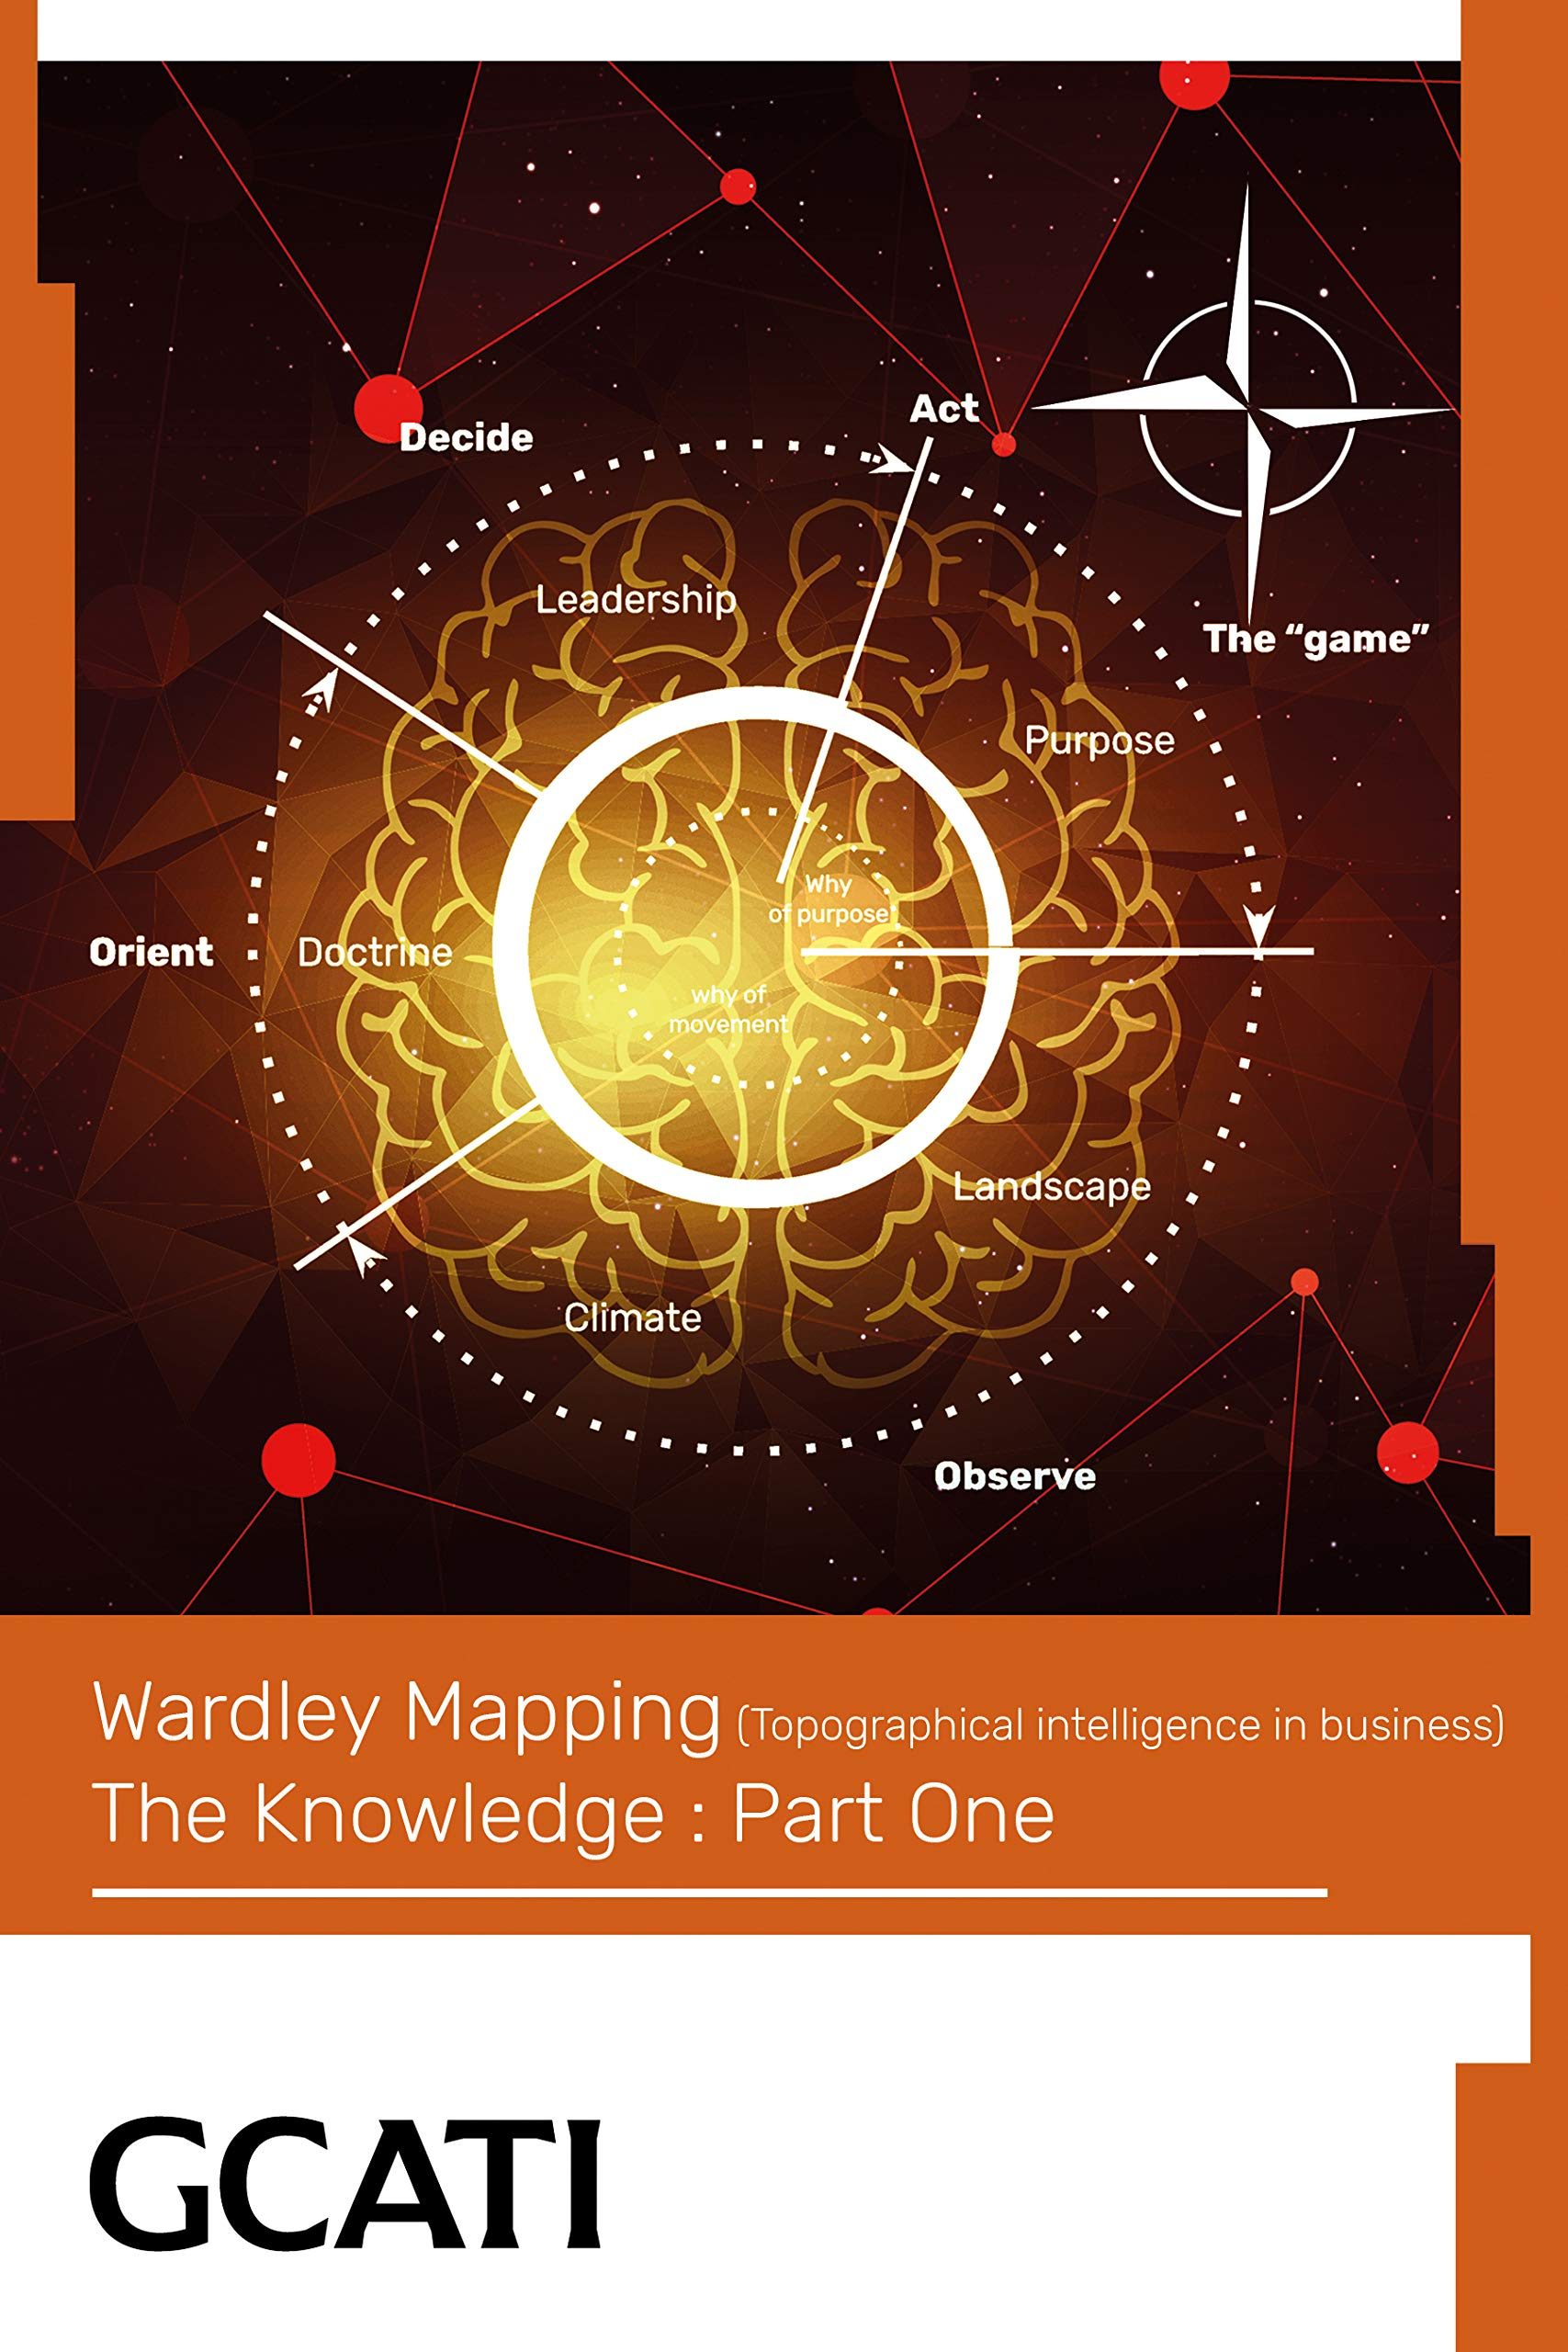 Wardley Mapping (Topographical intelligence in business): The Knowledge - Part One